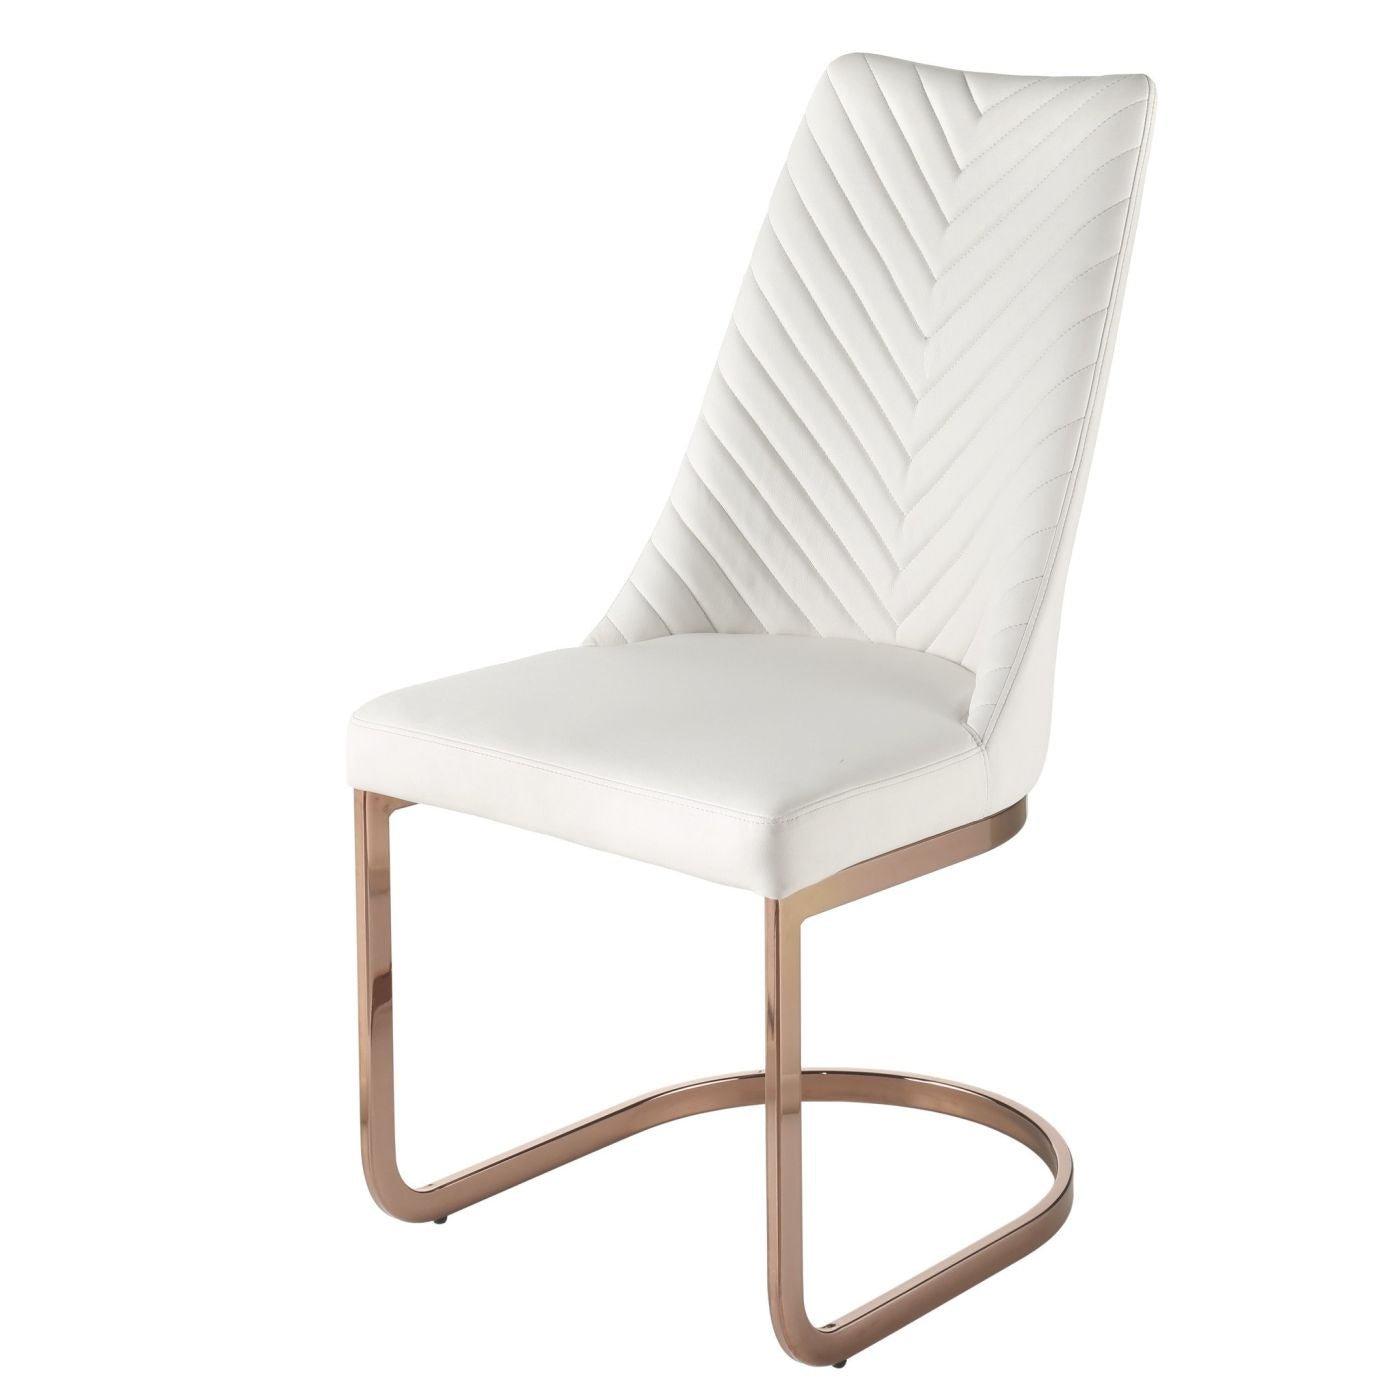 New Pacific Direct Kyla Chair Rose Gold Legs White Set